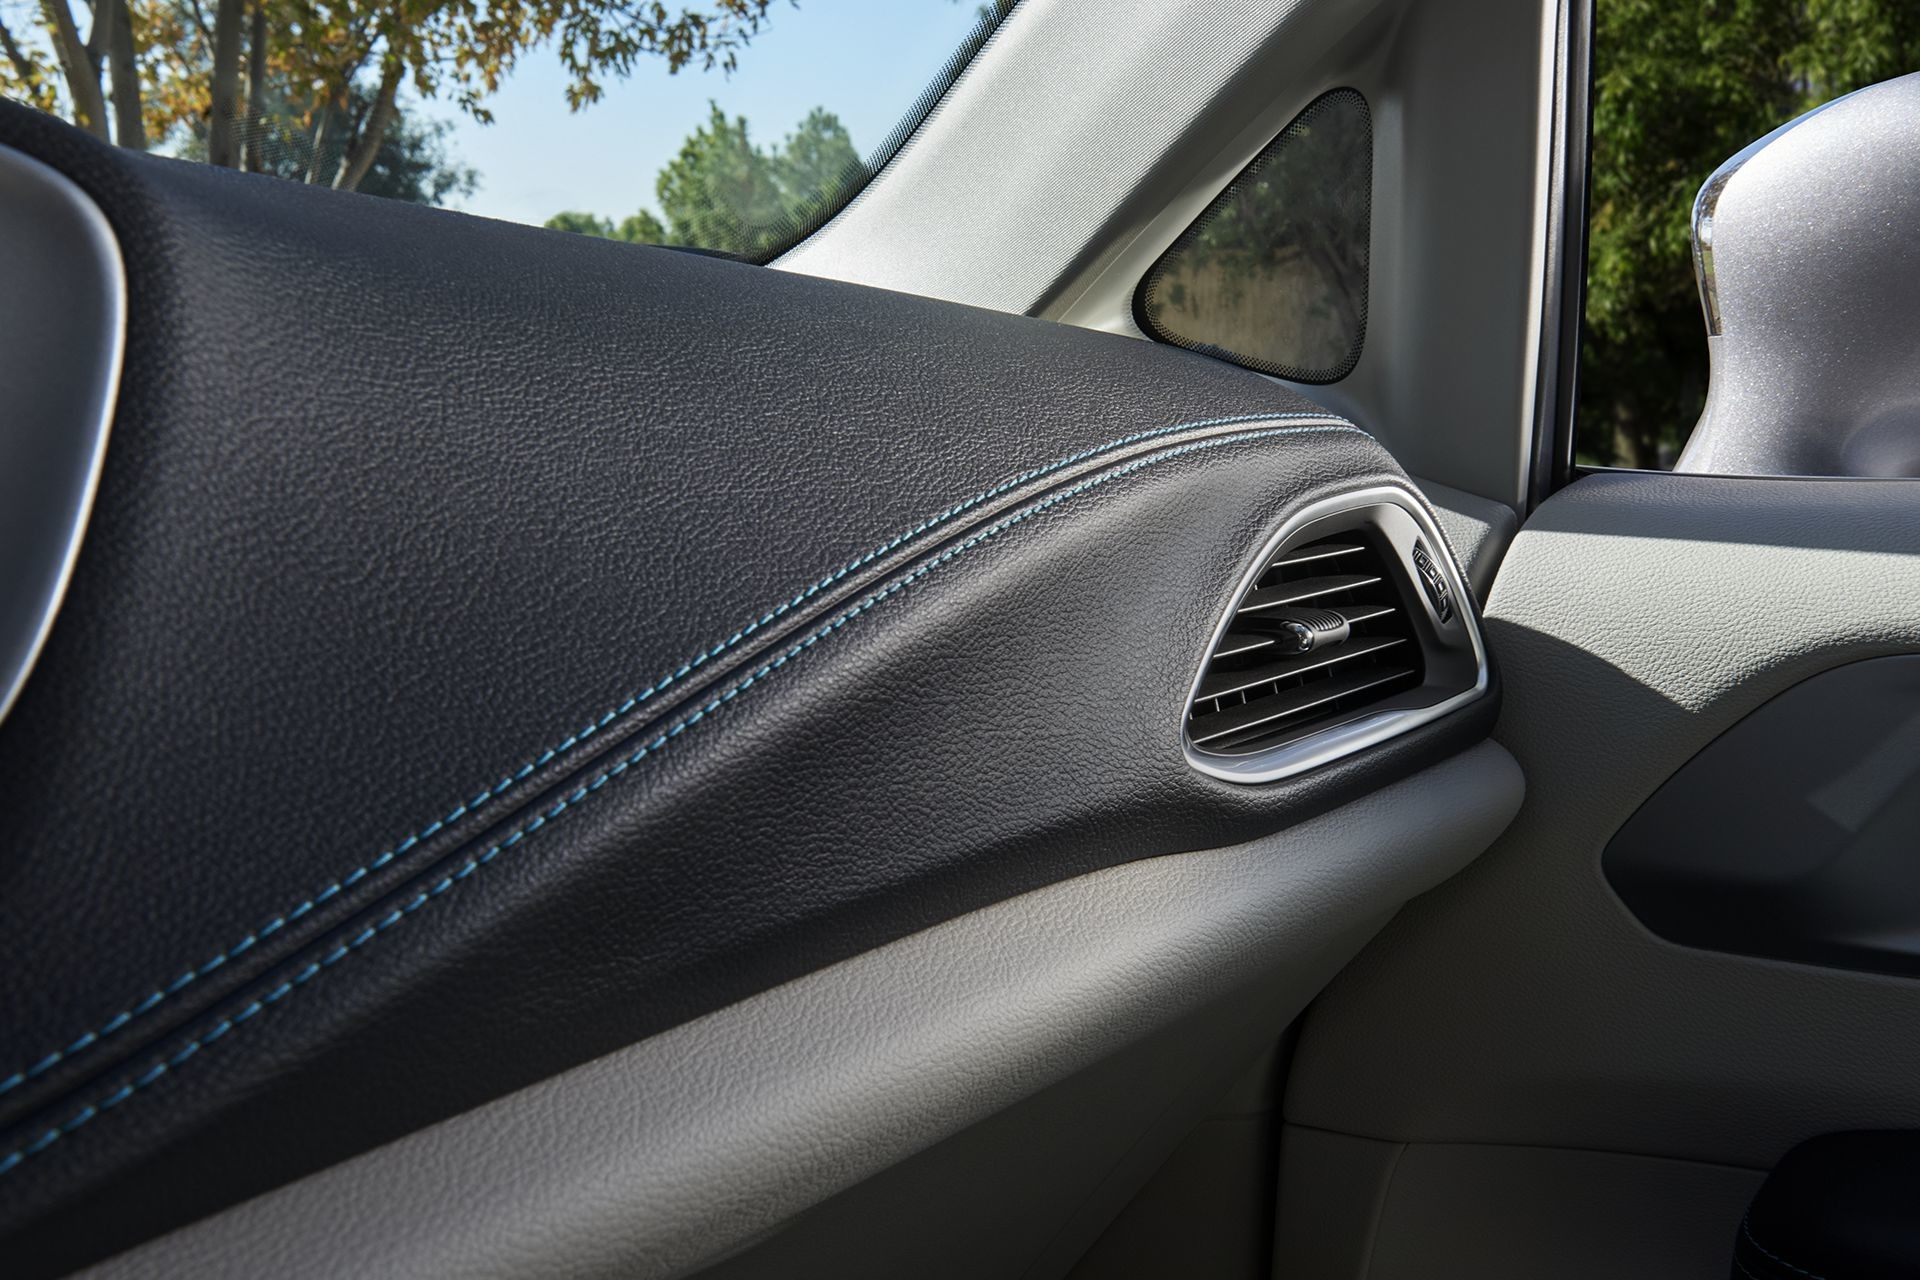 Chrysler Pacifica Hybrid 2018 Interior Front Dashboard Air Vent